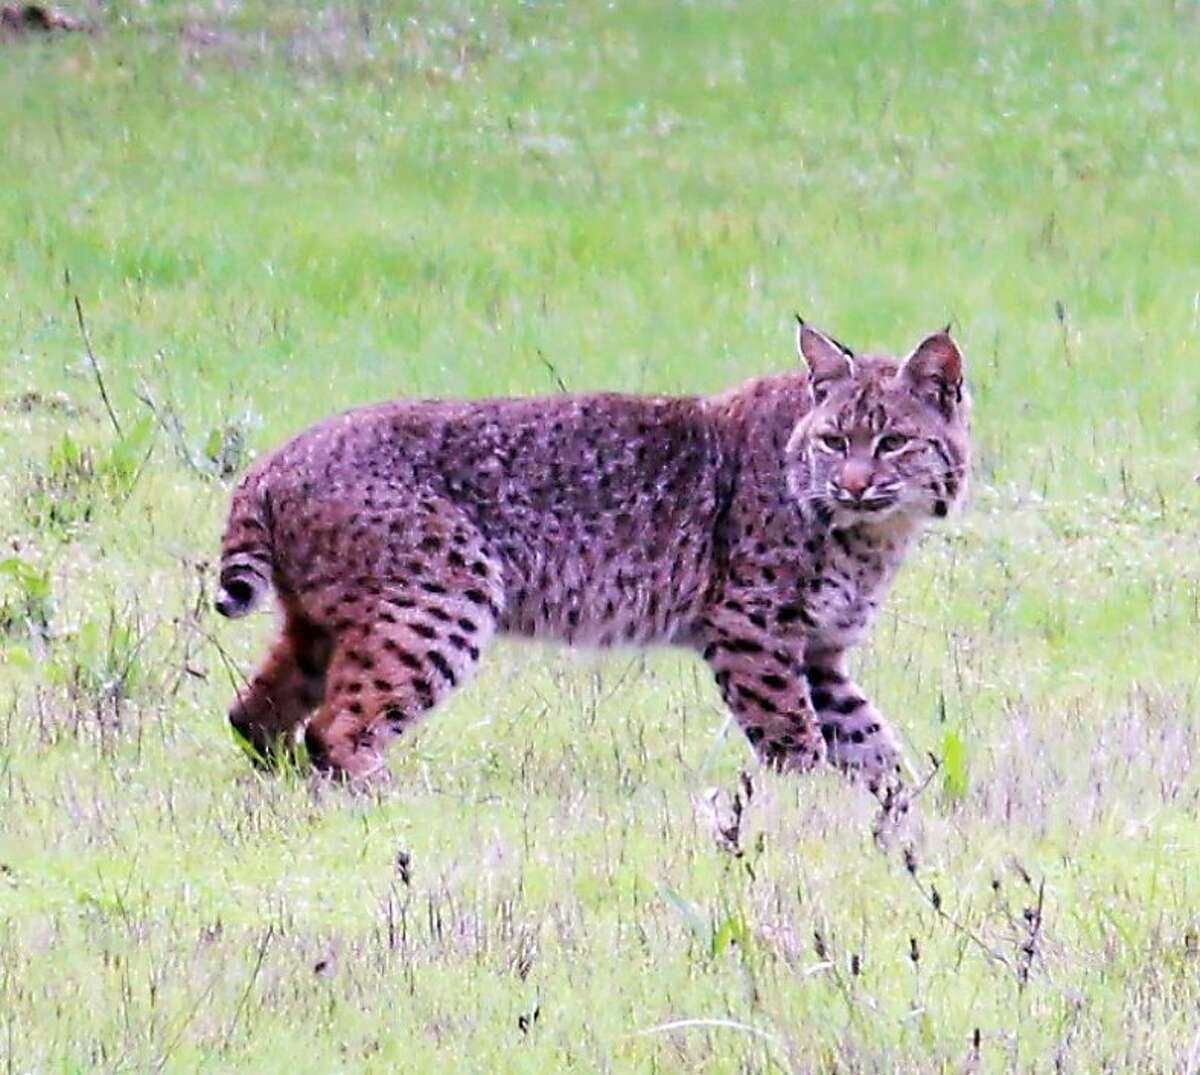 Bobcat is front yard for Bruce Manson and his daughter in Glen Ellen Photo courtesy Bruce Manson